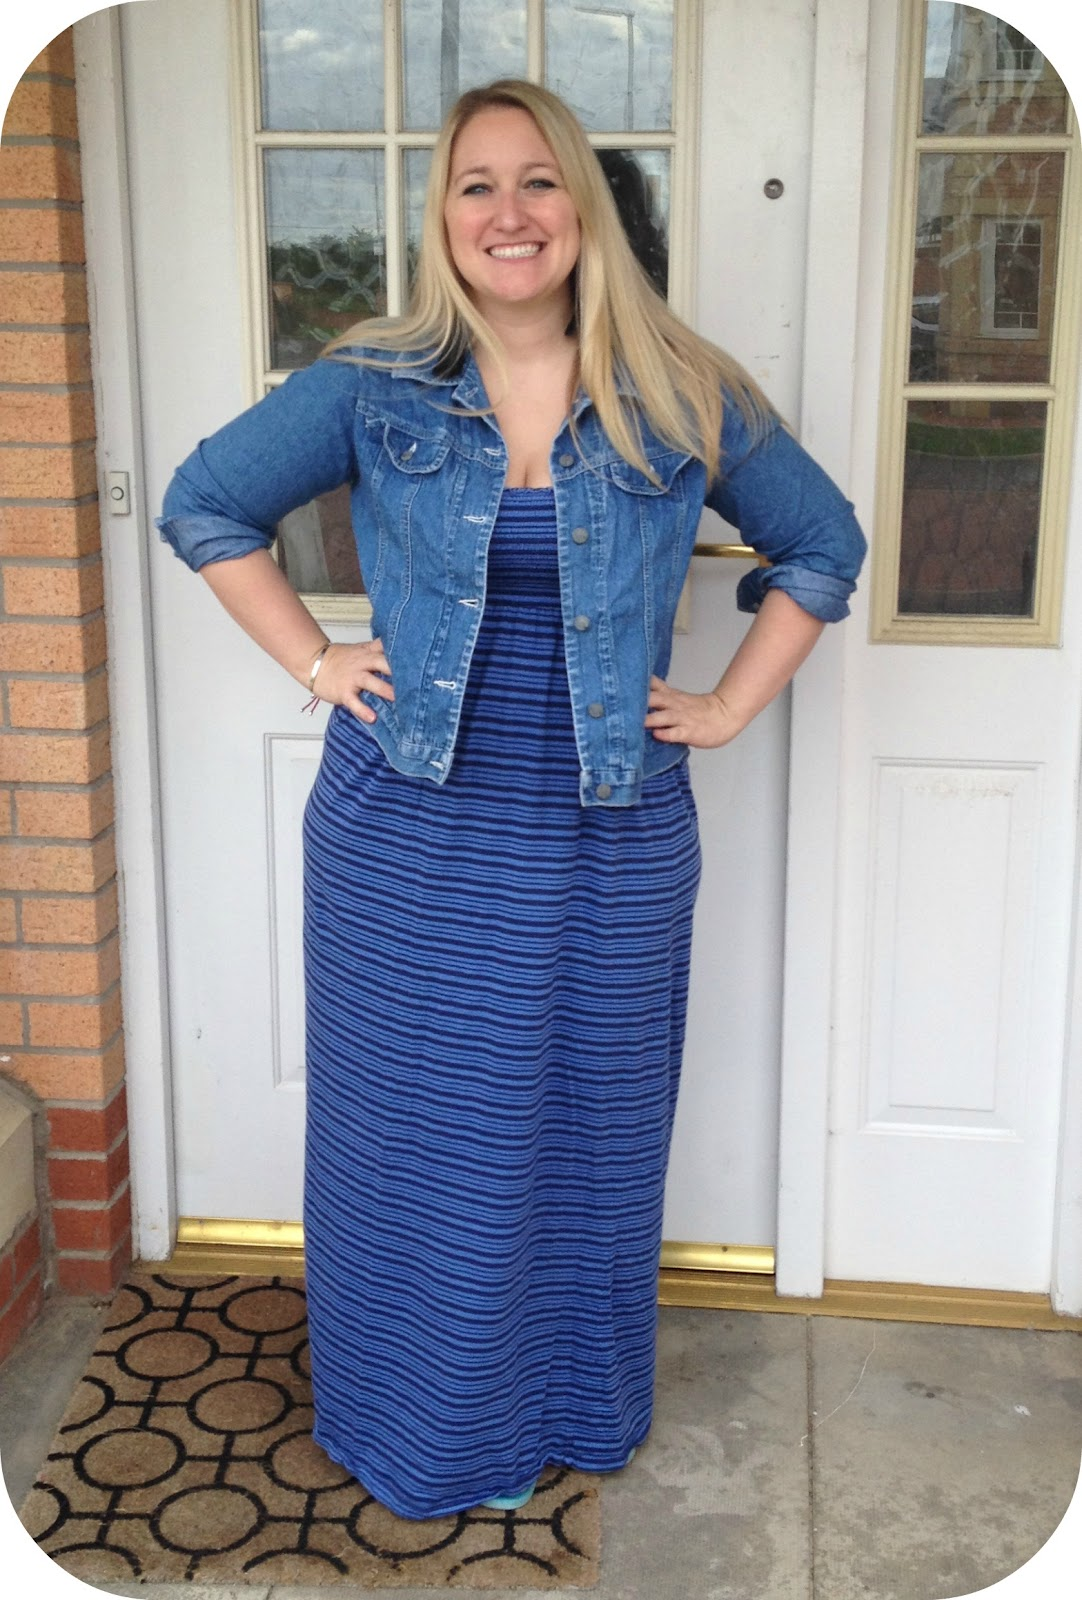 971cc901c2e Transatlantic Blonde  What I Wore Wednesday  Maxi Dress and Old Jean ...